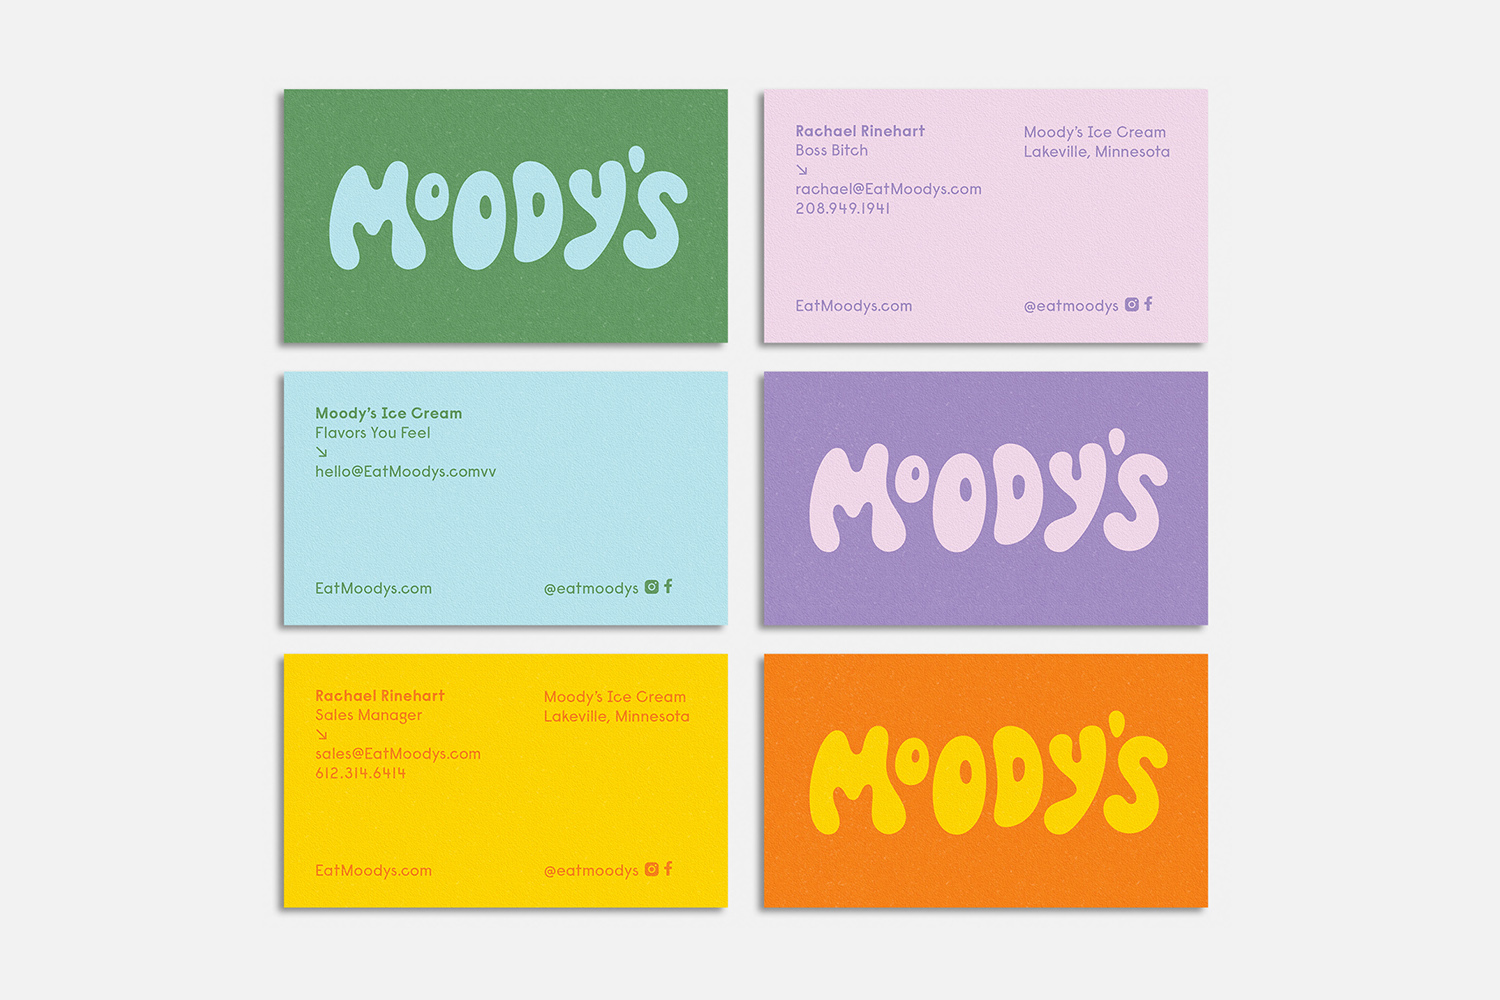 Moodys business cards2